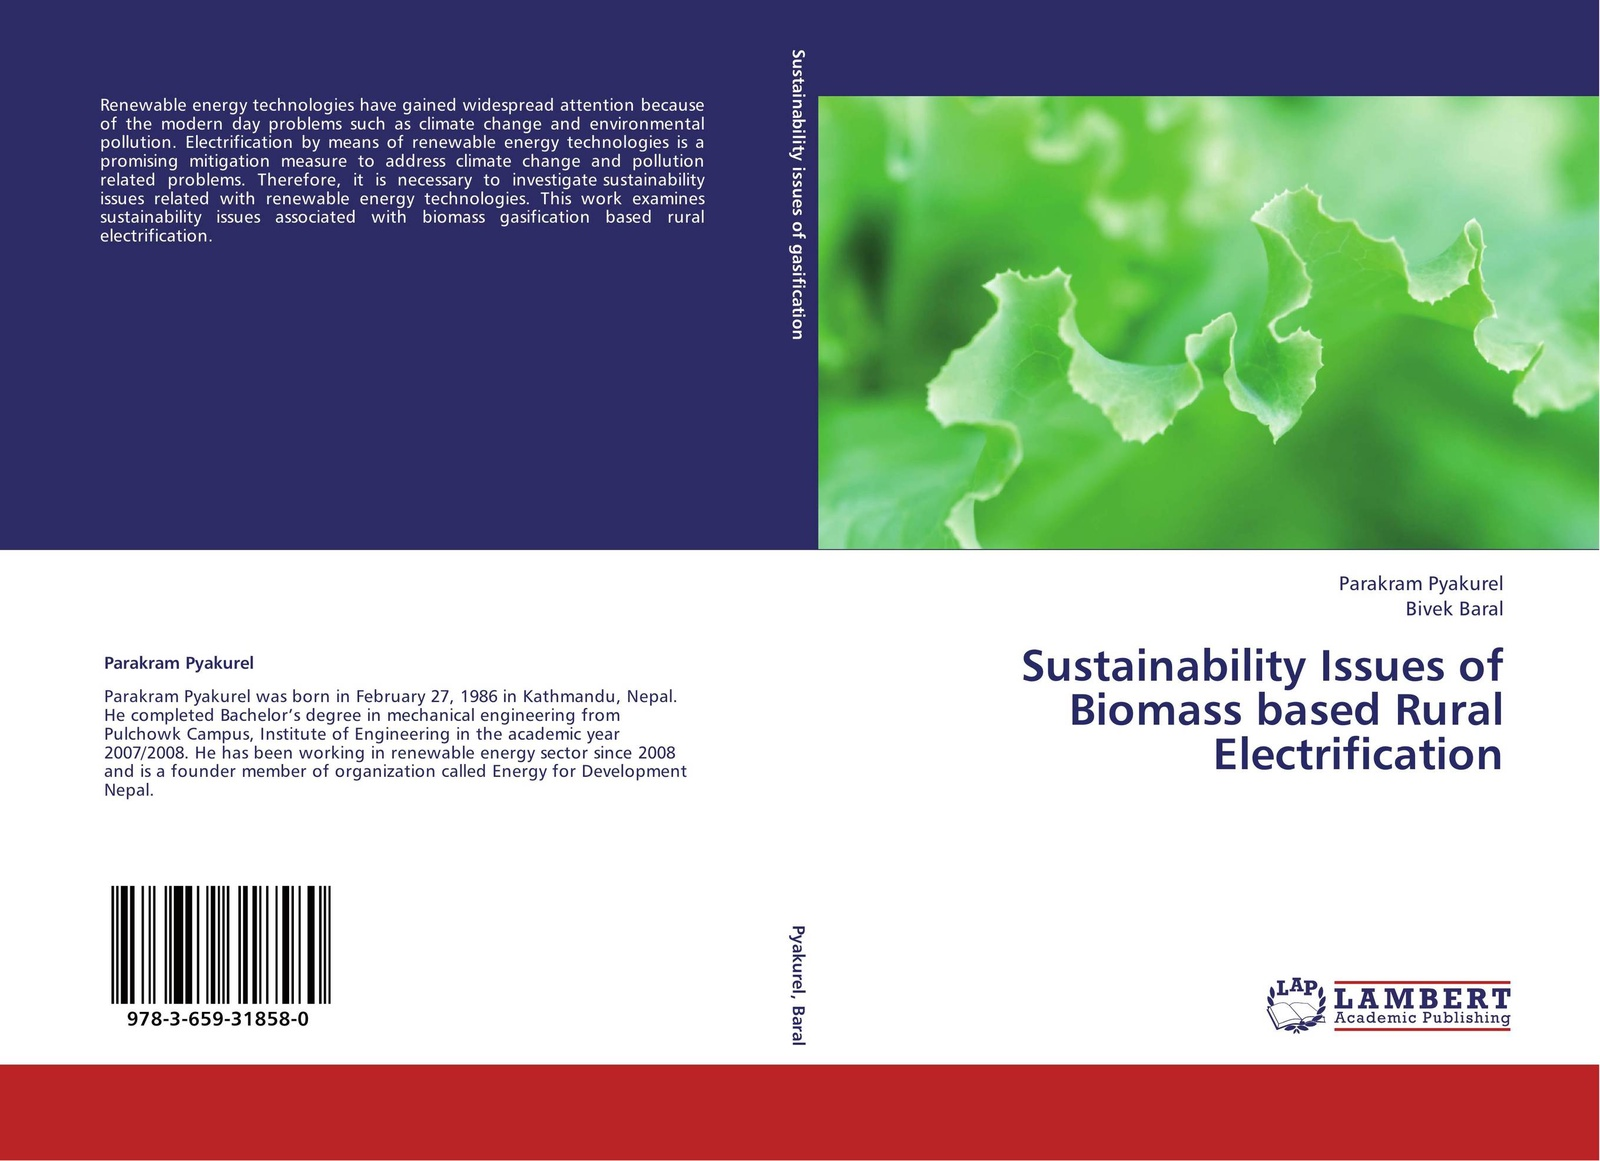 Parakram Pyakurel and Bivek Baral Sustainability Issues of Biomass based Rural Electrification wu ying acid gas injection and related technologies